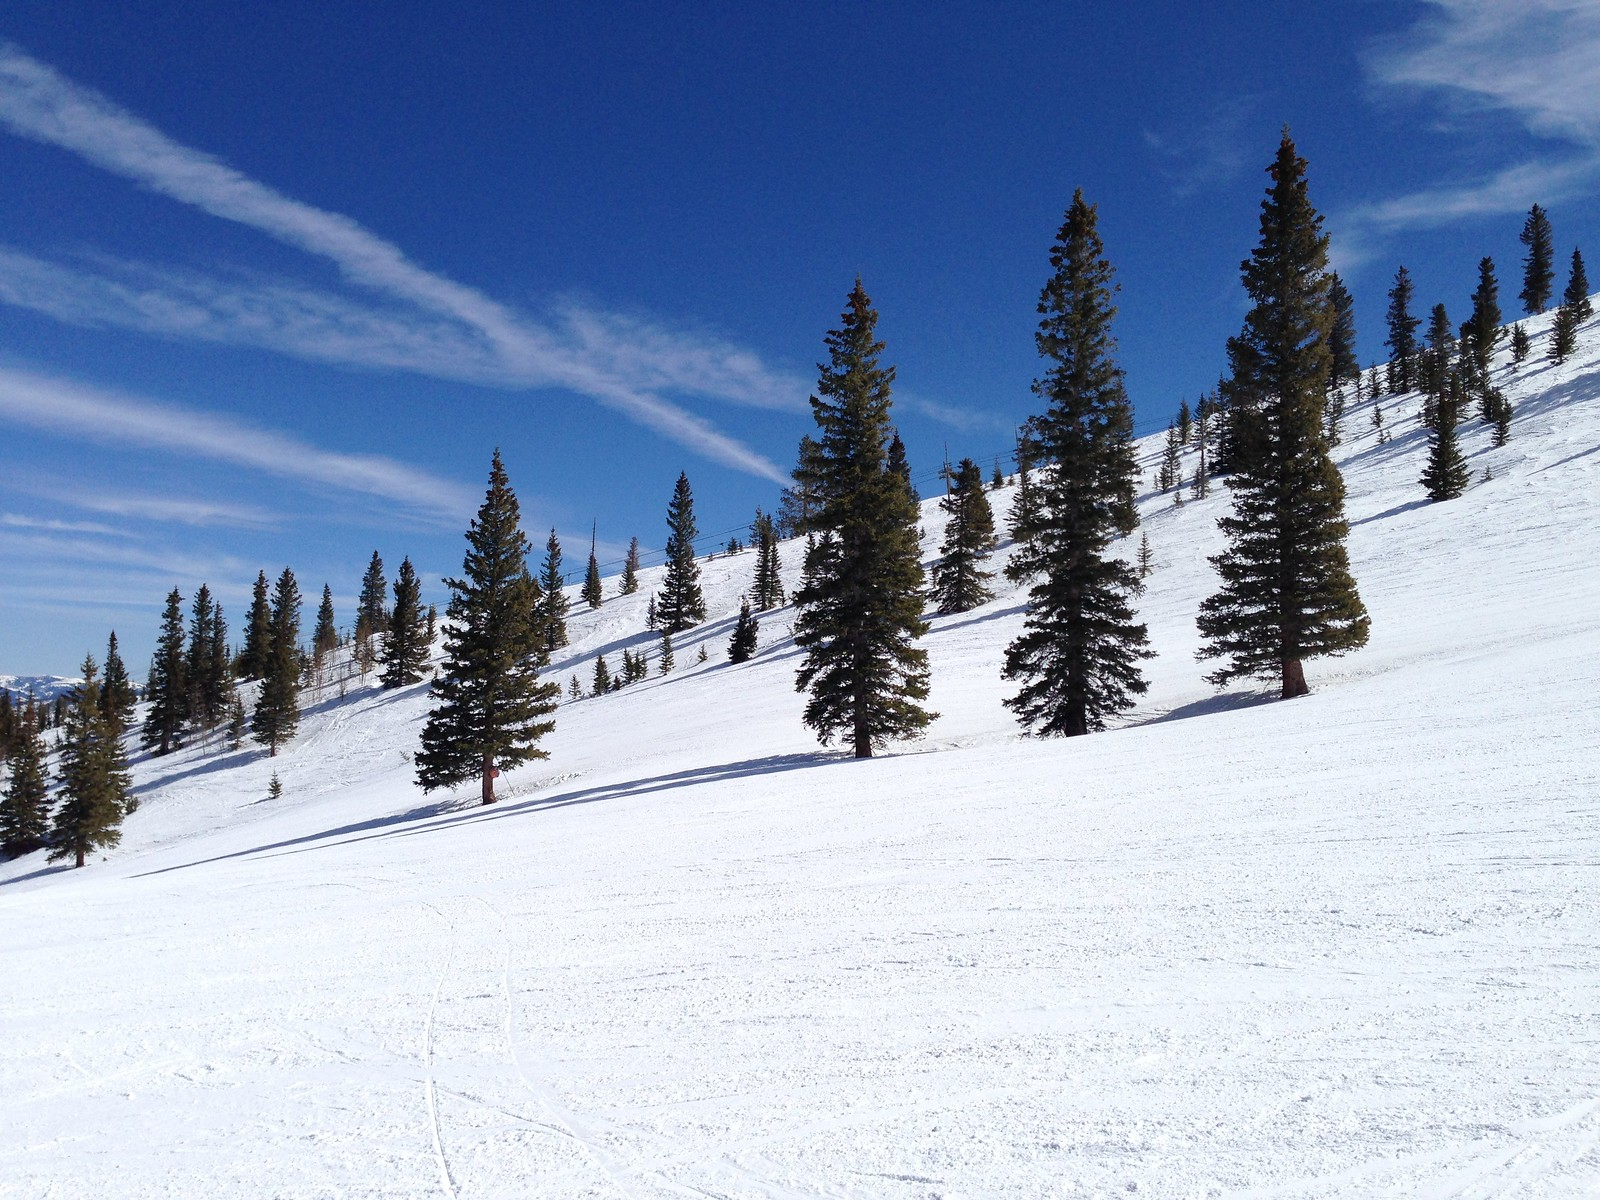 Skiing scenery at Elk Camp